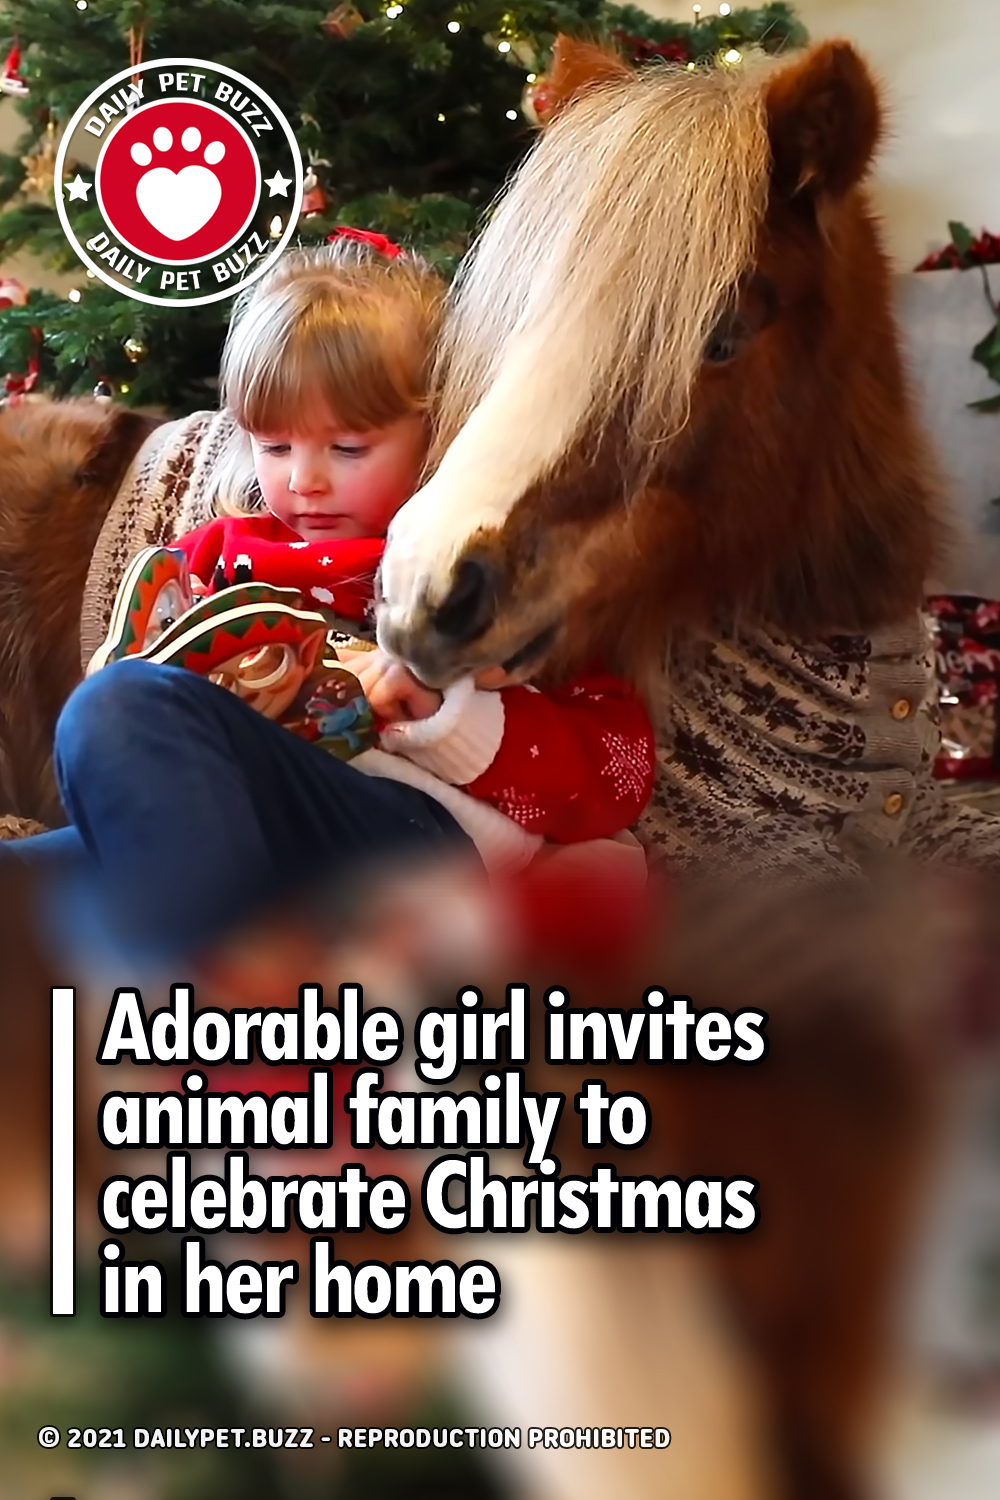 Adorable girl invites animal family to celebrate Christmas in her home